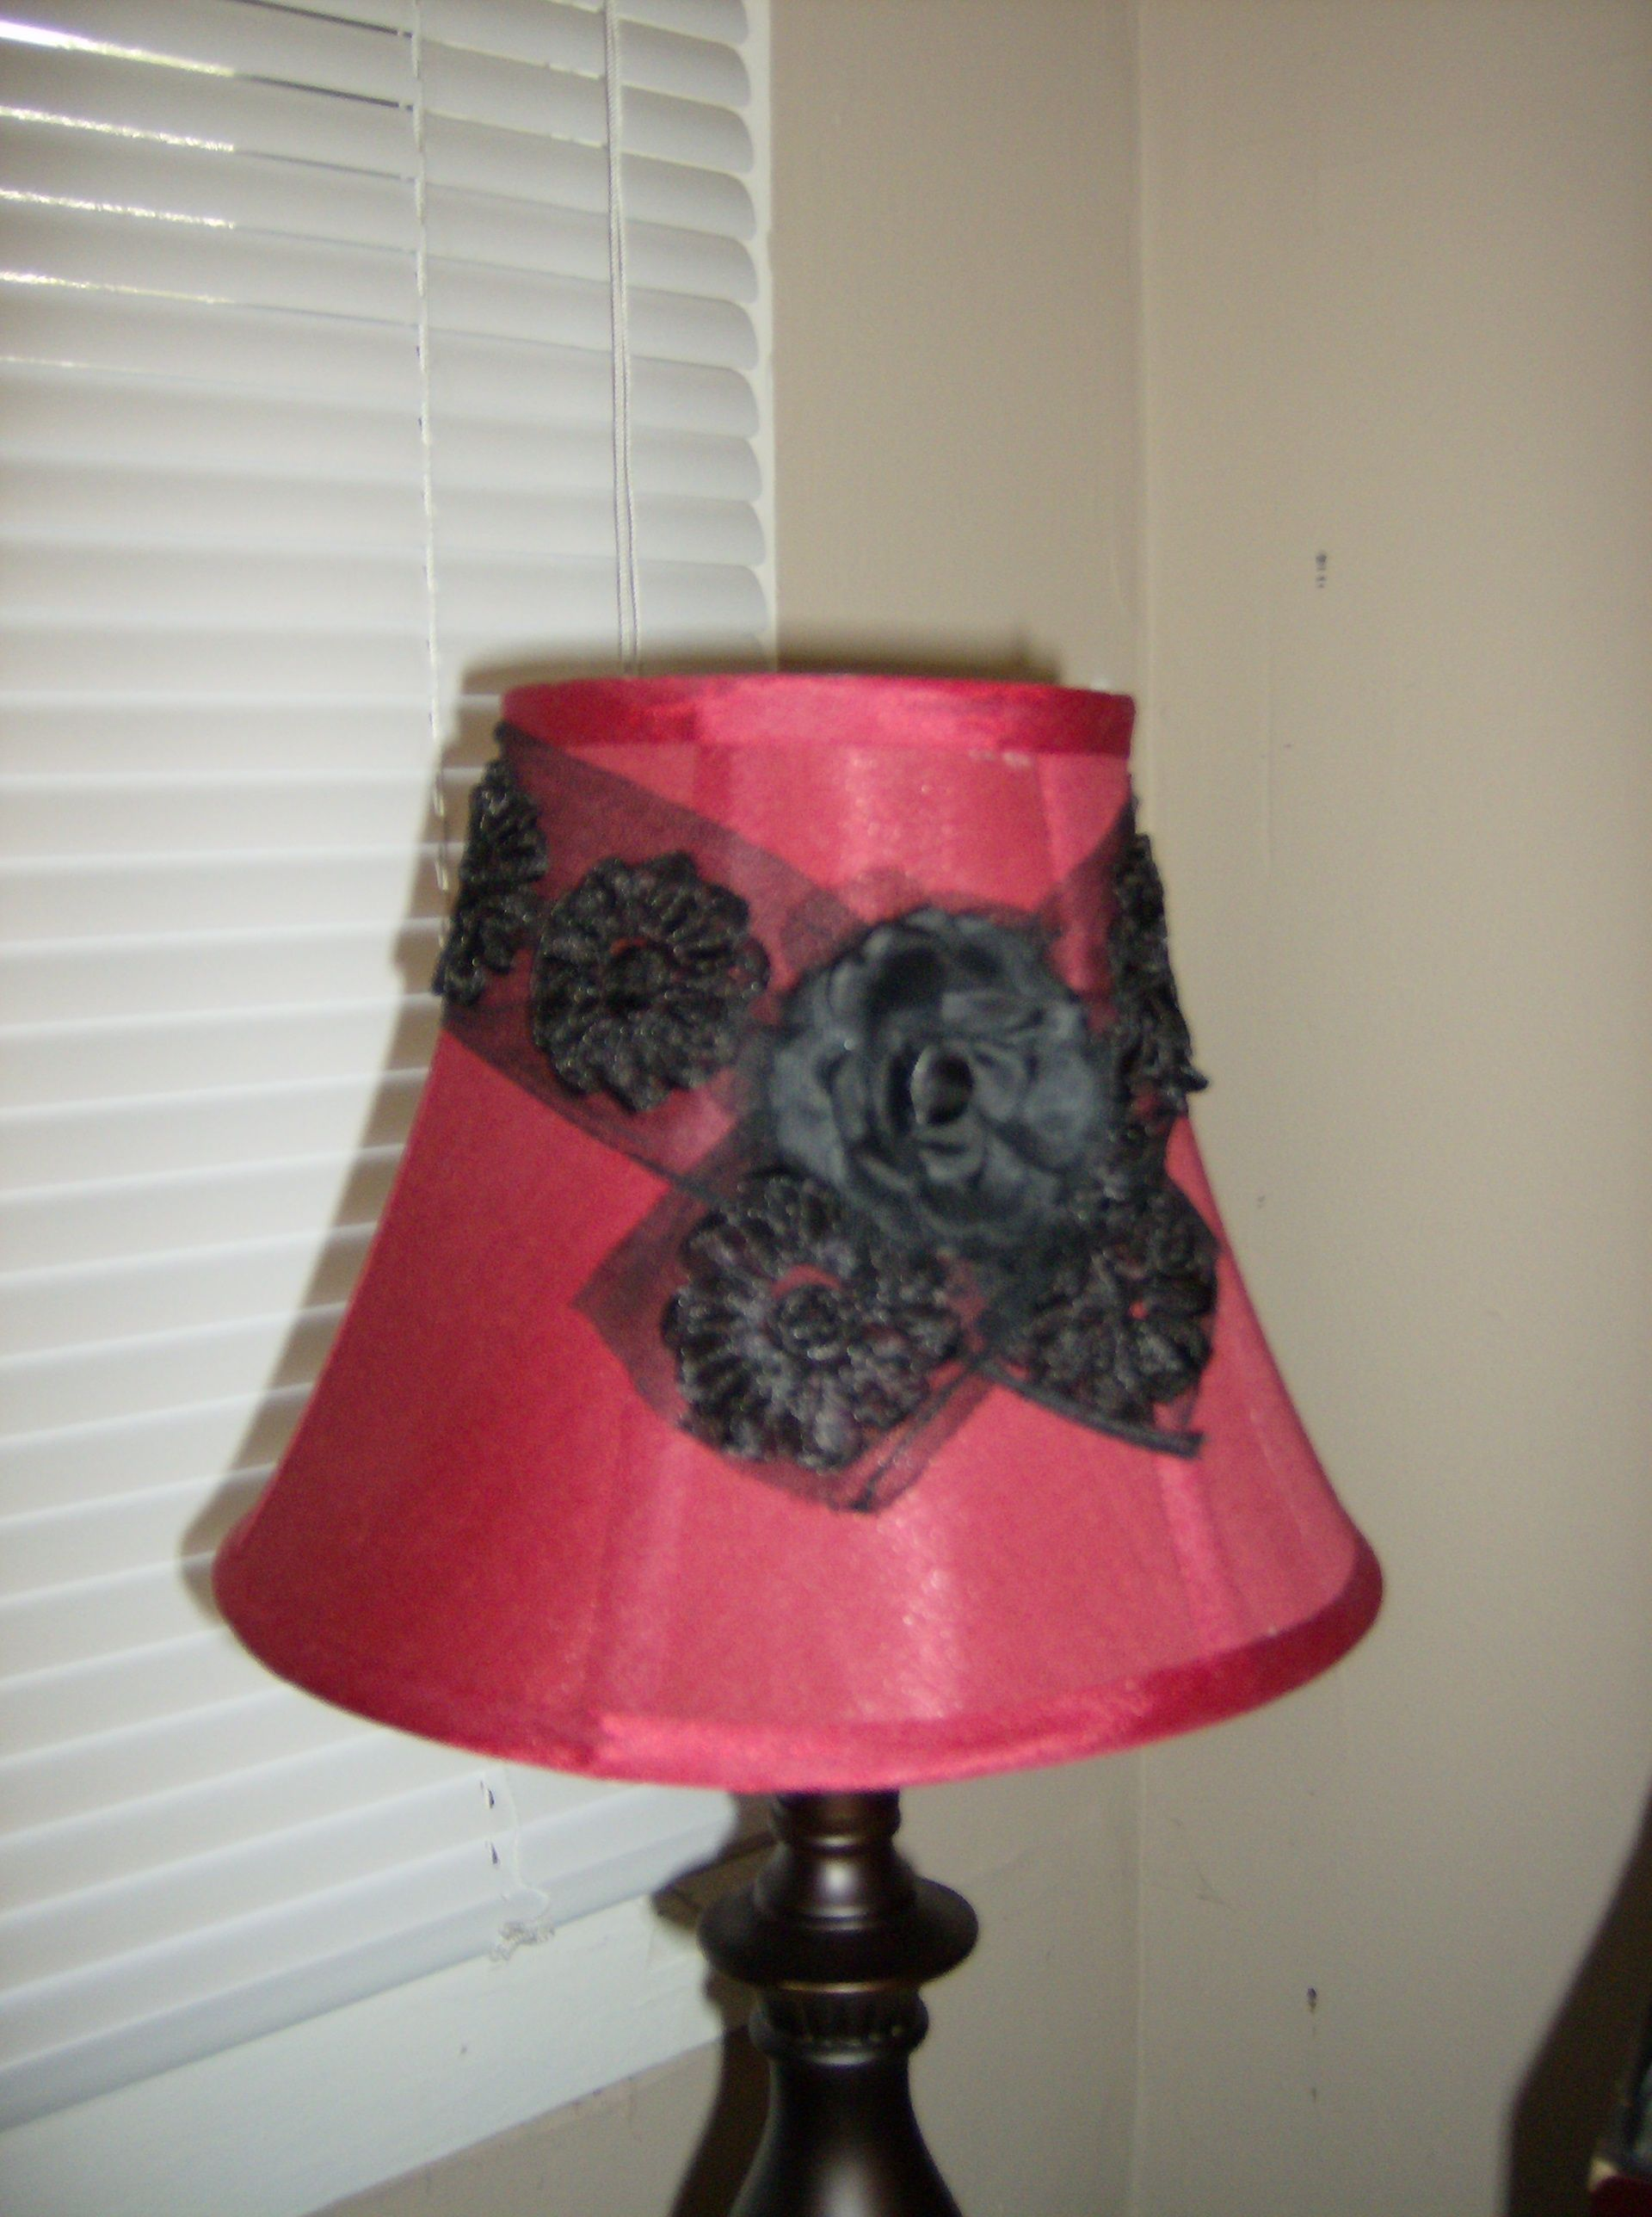 Hobby Lobby Lamp Shades New Decorative Lamp Shadehobby Lobby Knockoff Projects Decorating Inspiration